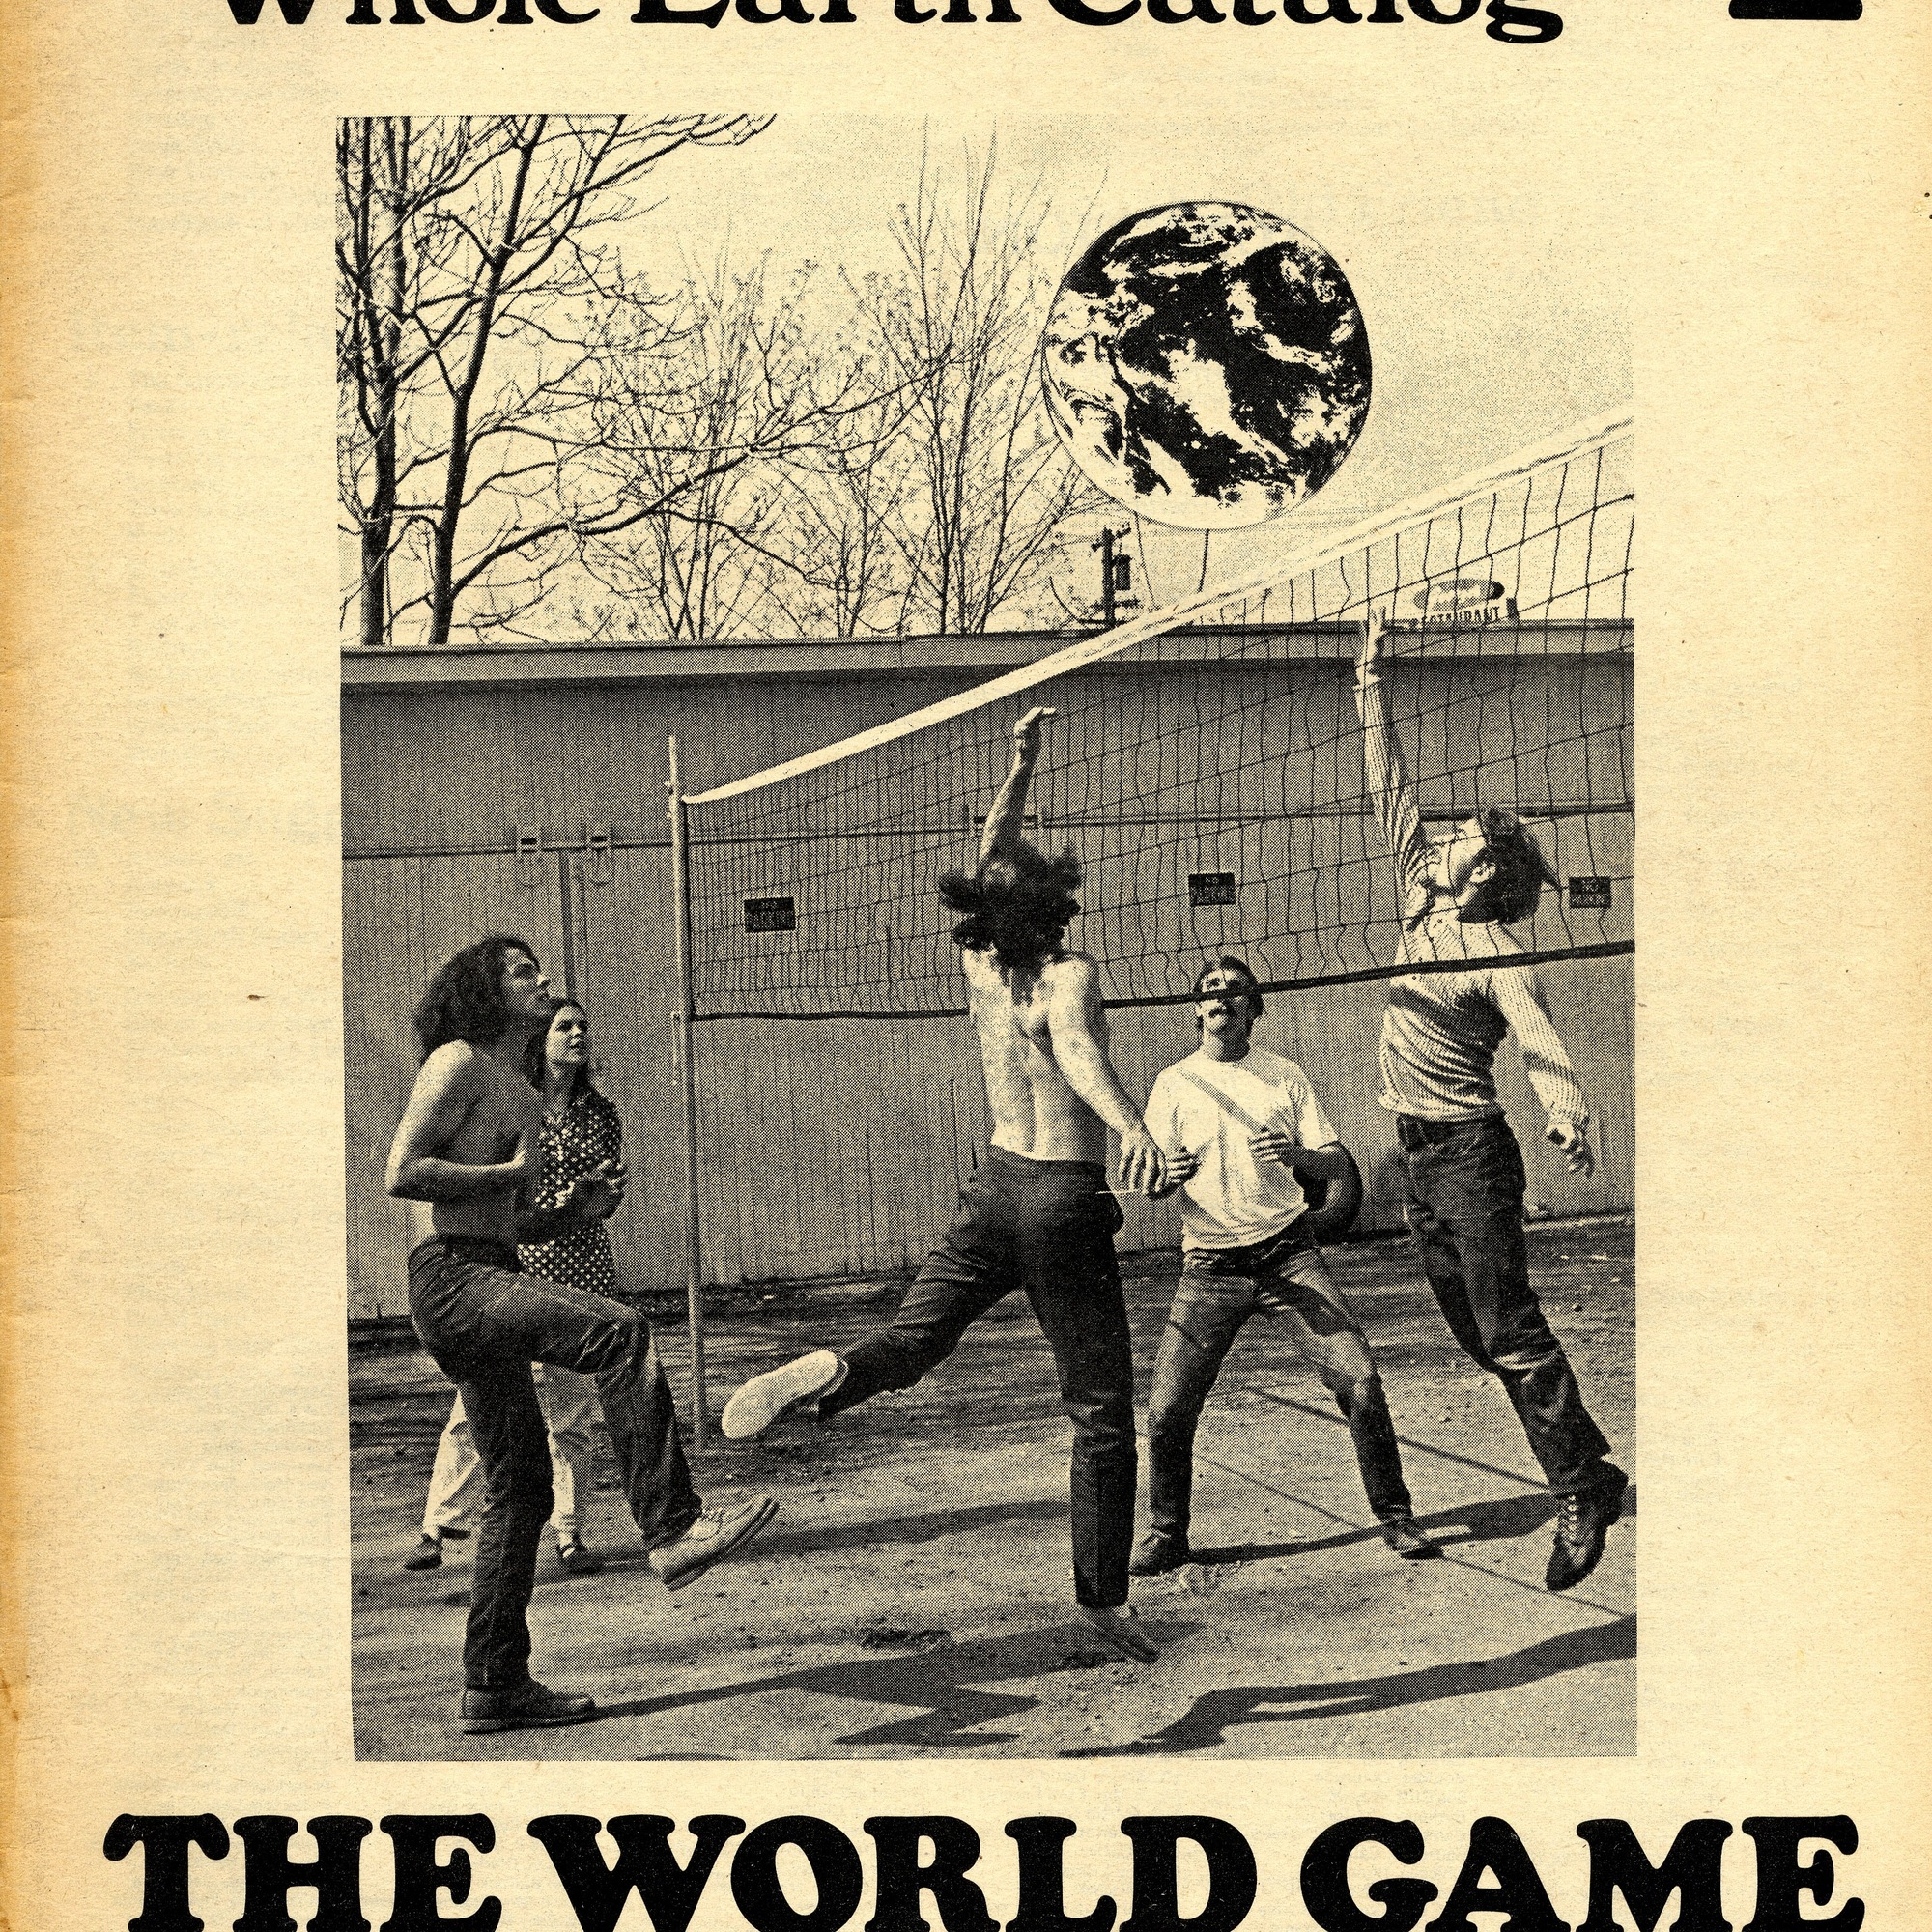 """The World Game."" In Whole Earth Catalog (March 1970)."